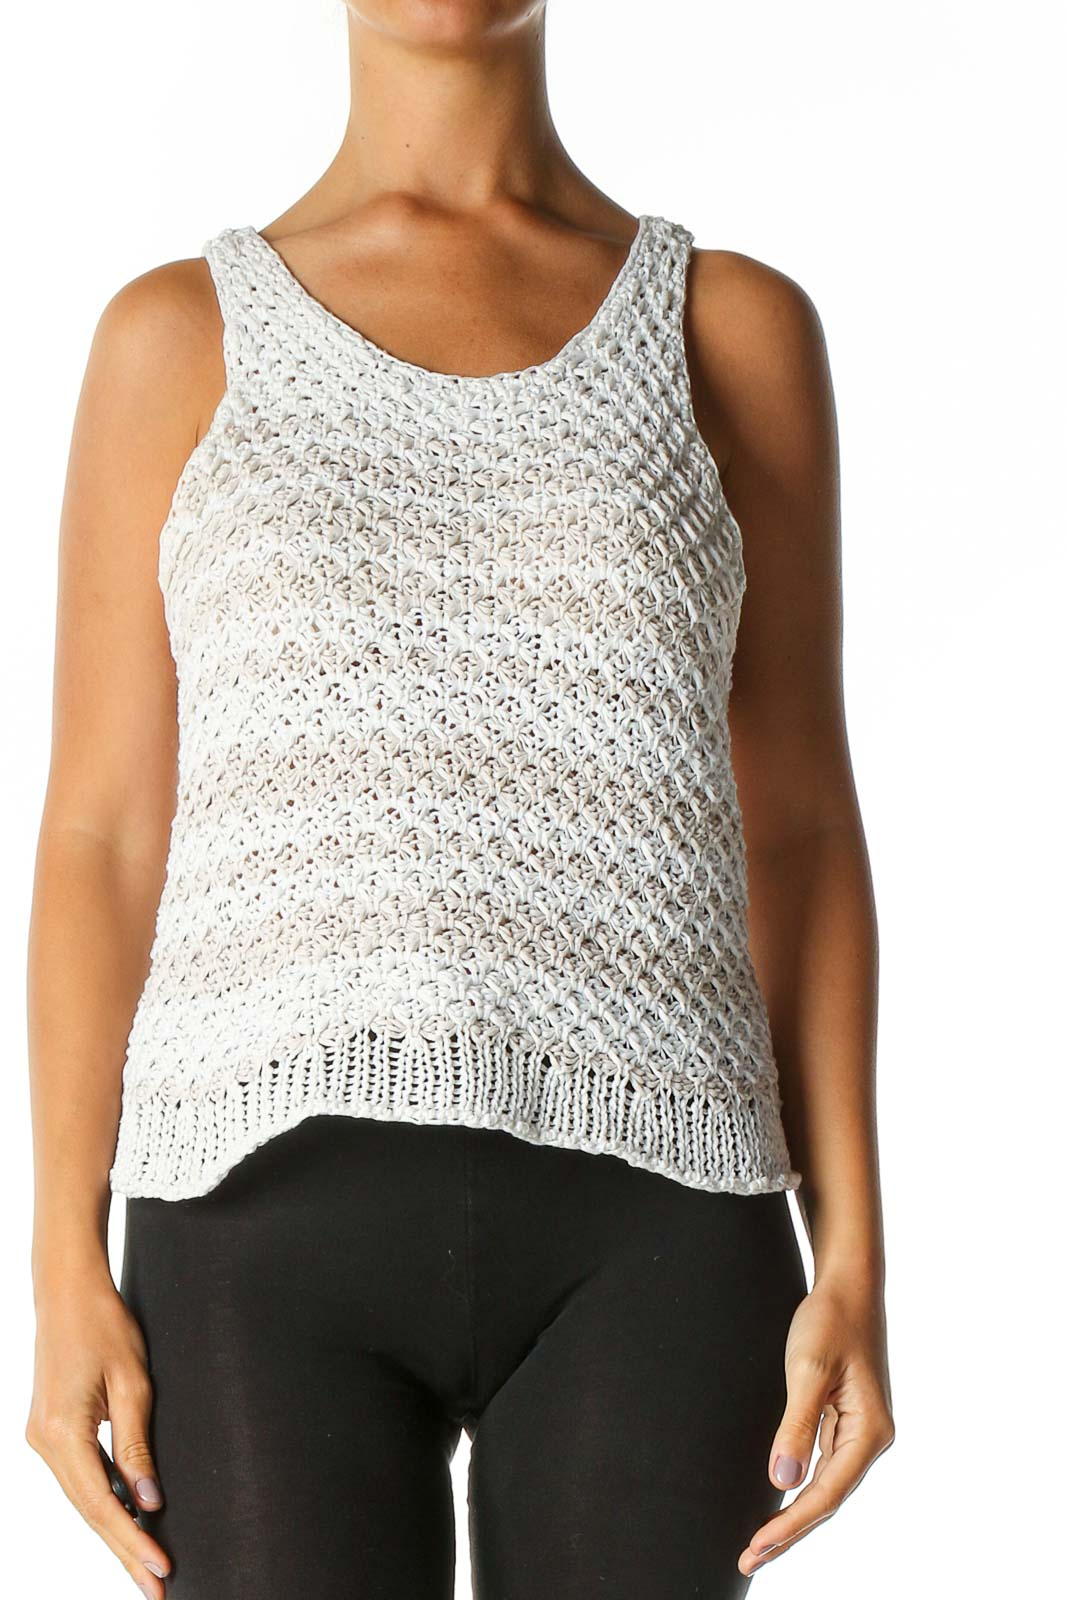 White Textured Casual Tank Top Front